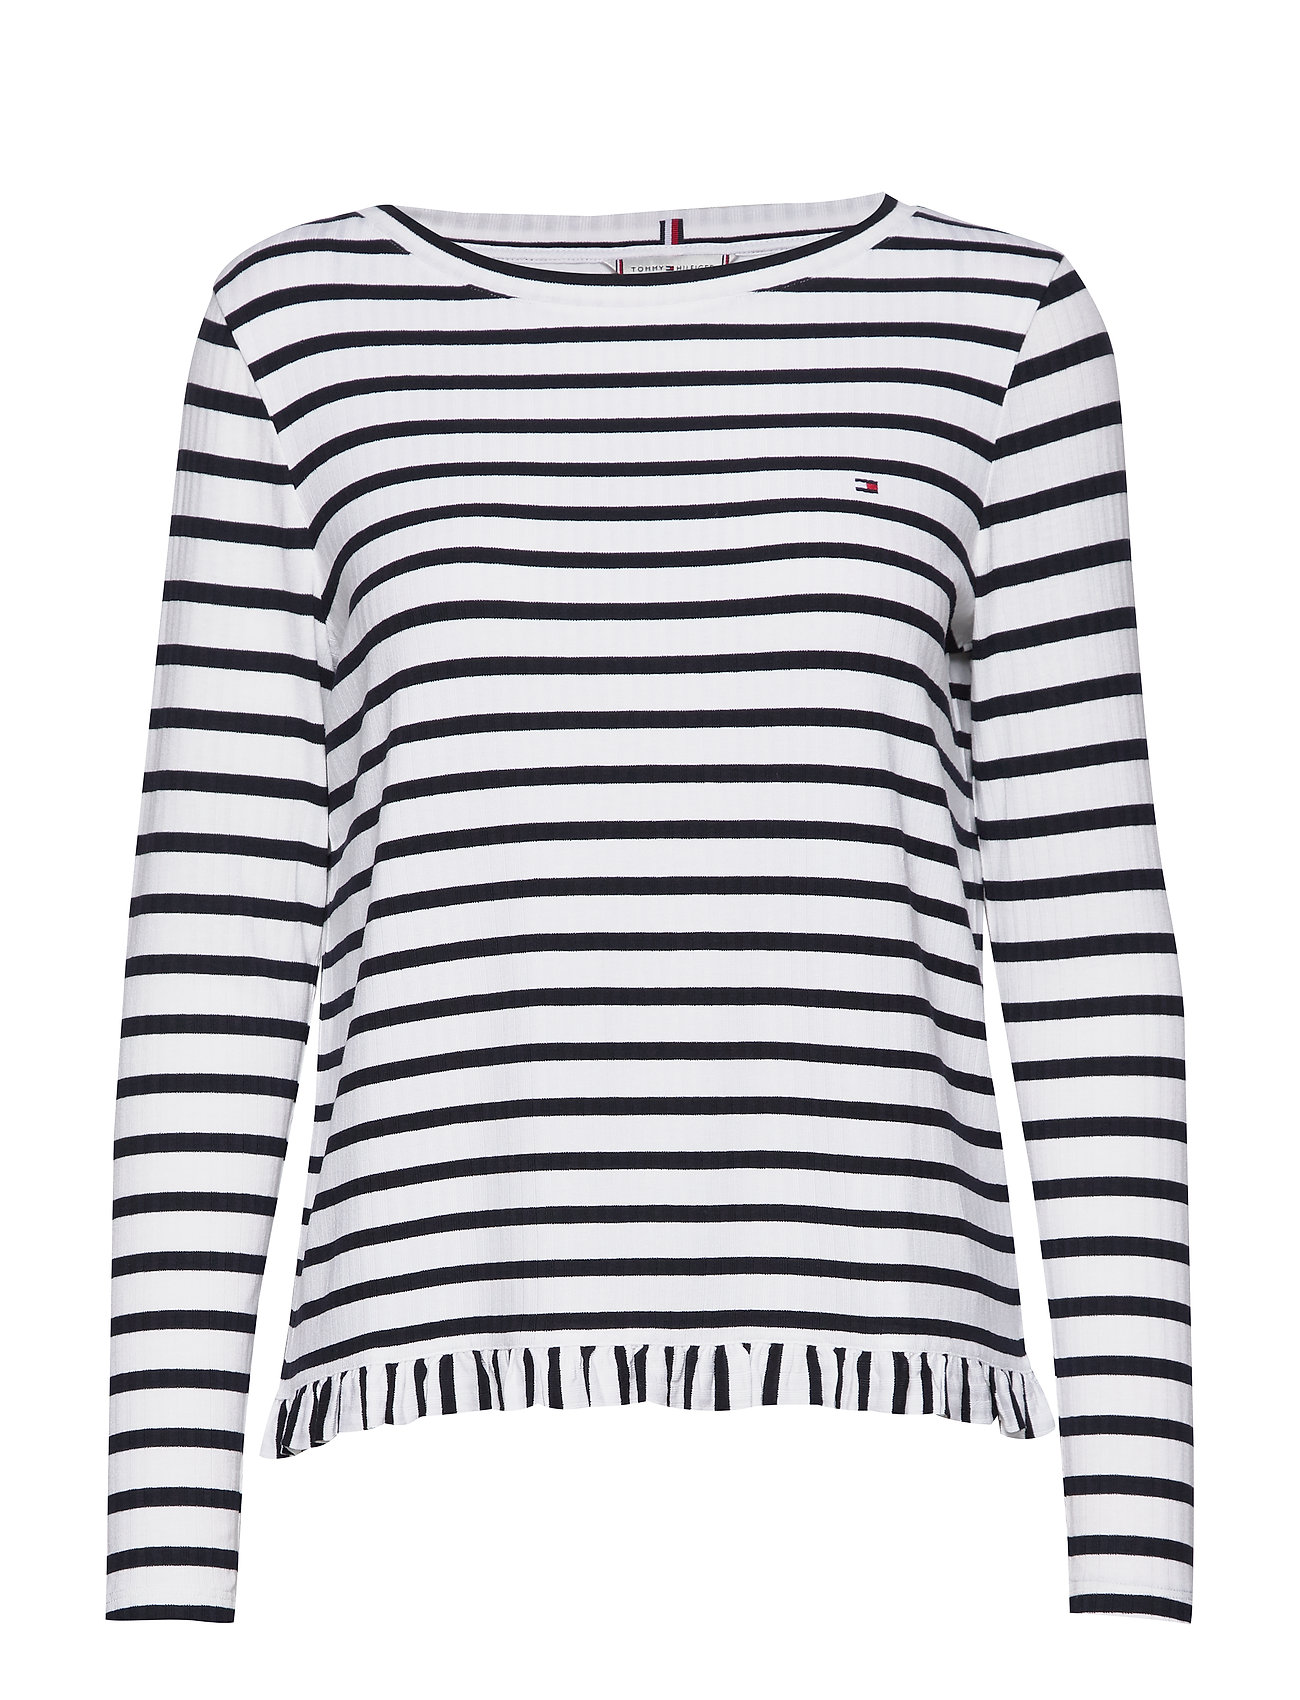 Tommy Hilfiger TANJA RELAXED BOAT-NK TOP LS - BRETON STP / DESERT SKY - WHIT